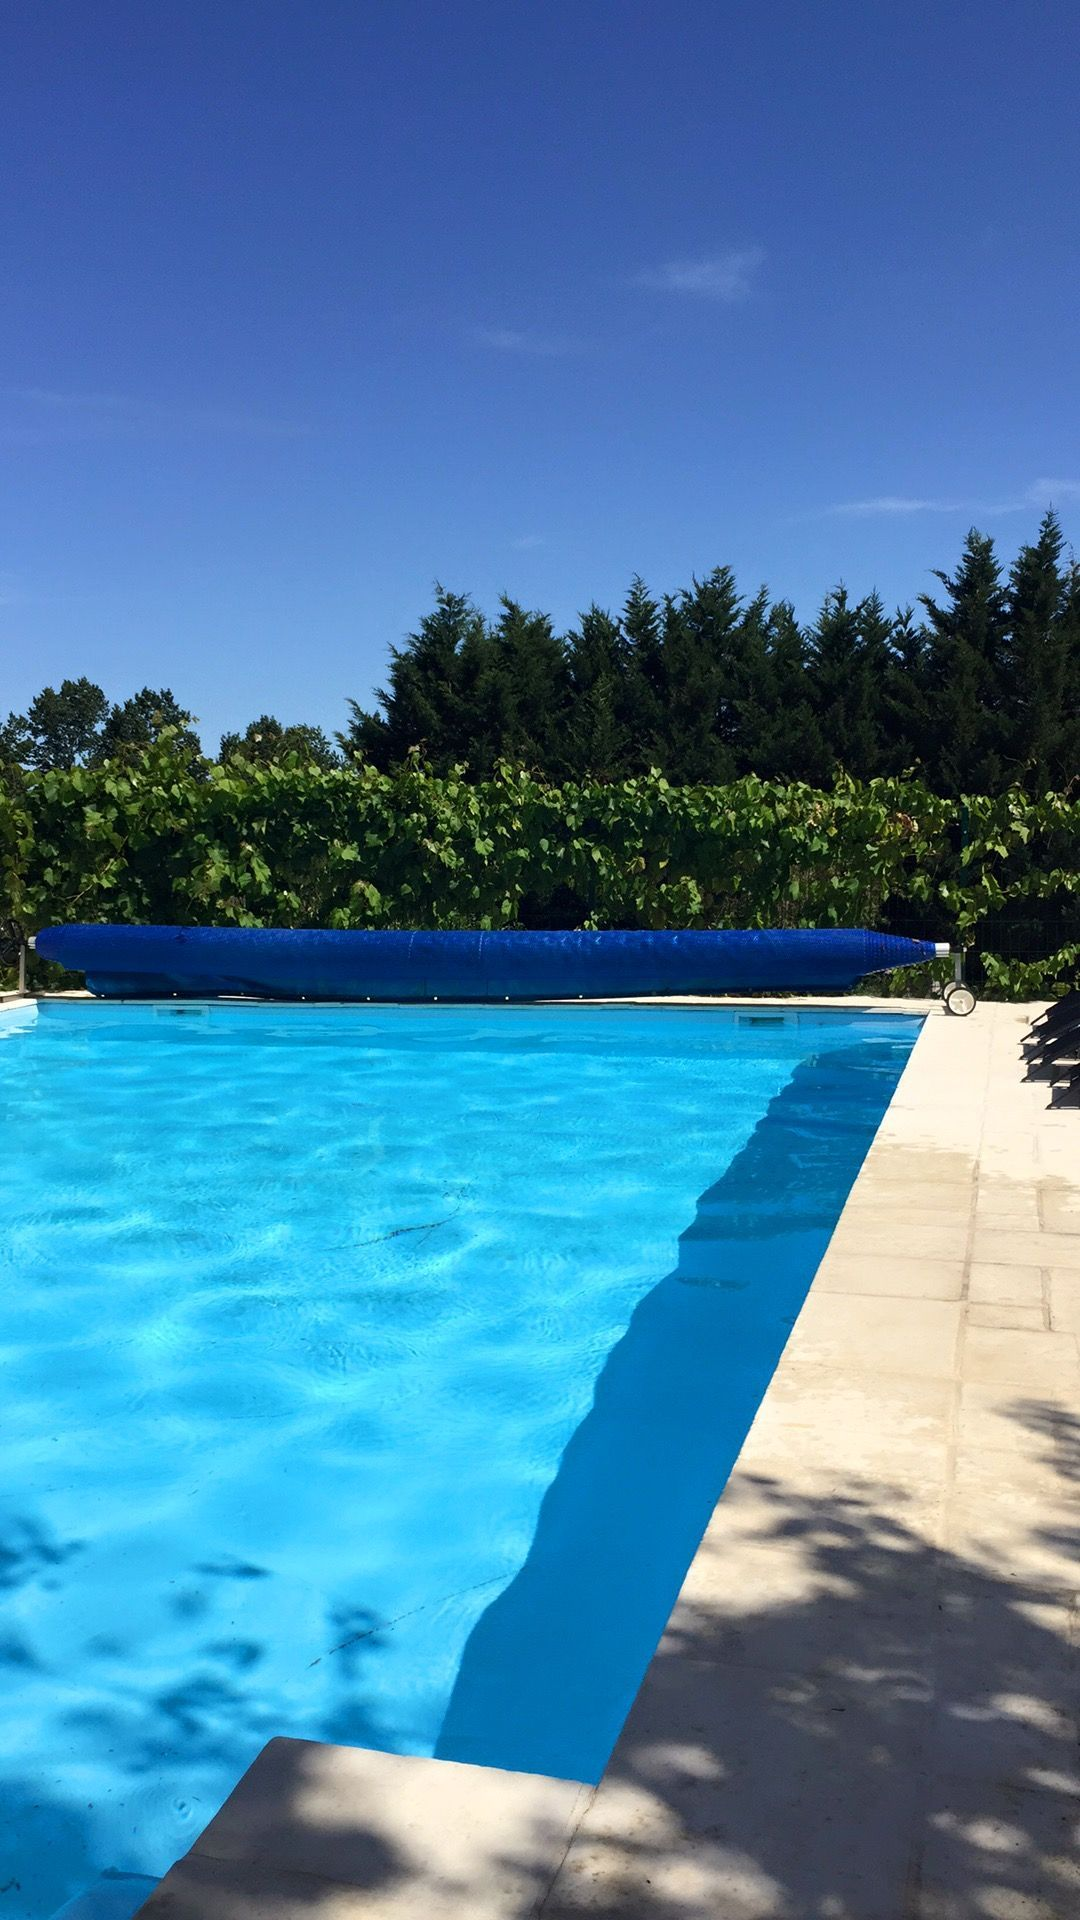 French Swimming Pool Design New Pool For 2017 9m X 6m House Available For Self Catering Holidays Events And Wedd Swimming Pool Designs Swimming Pools Pool